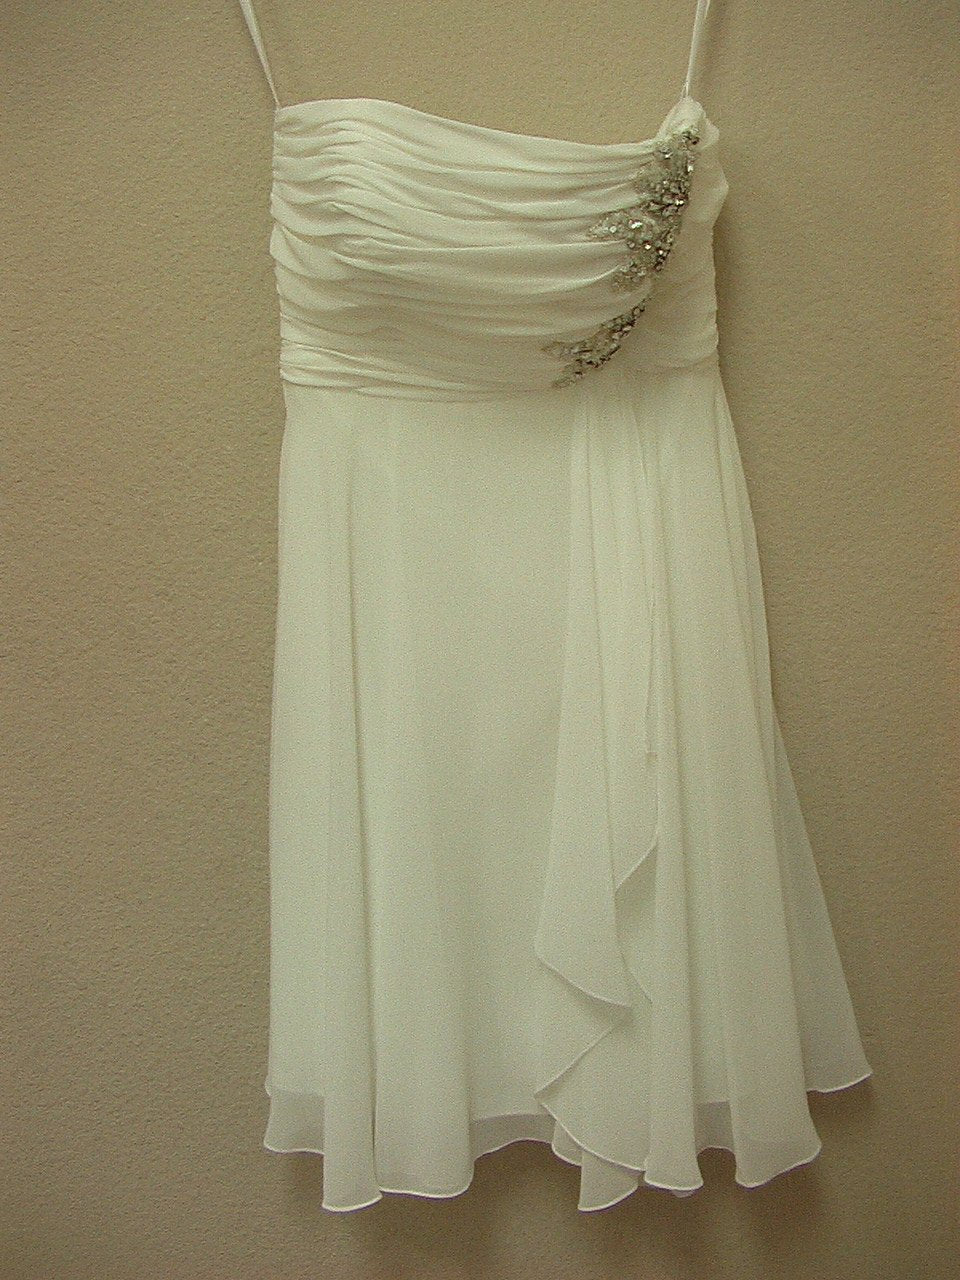 Allure 2304 Ivory/Silver size 8 In Stock Wedding Dress